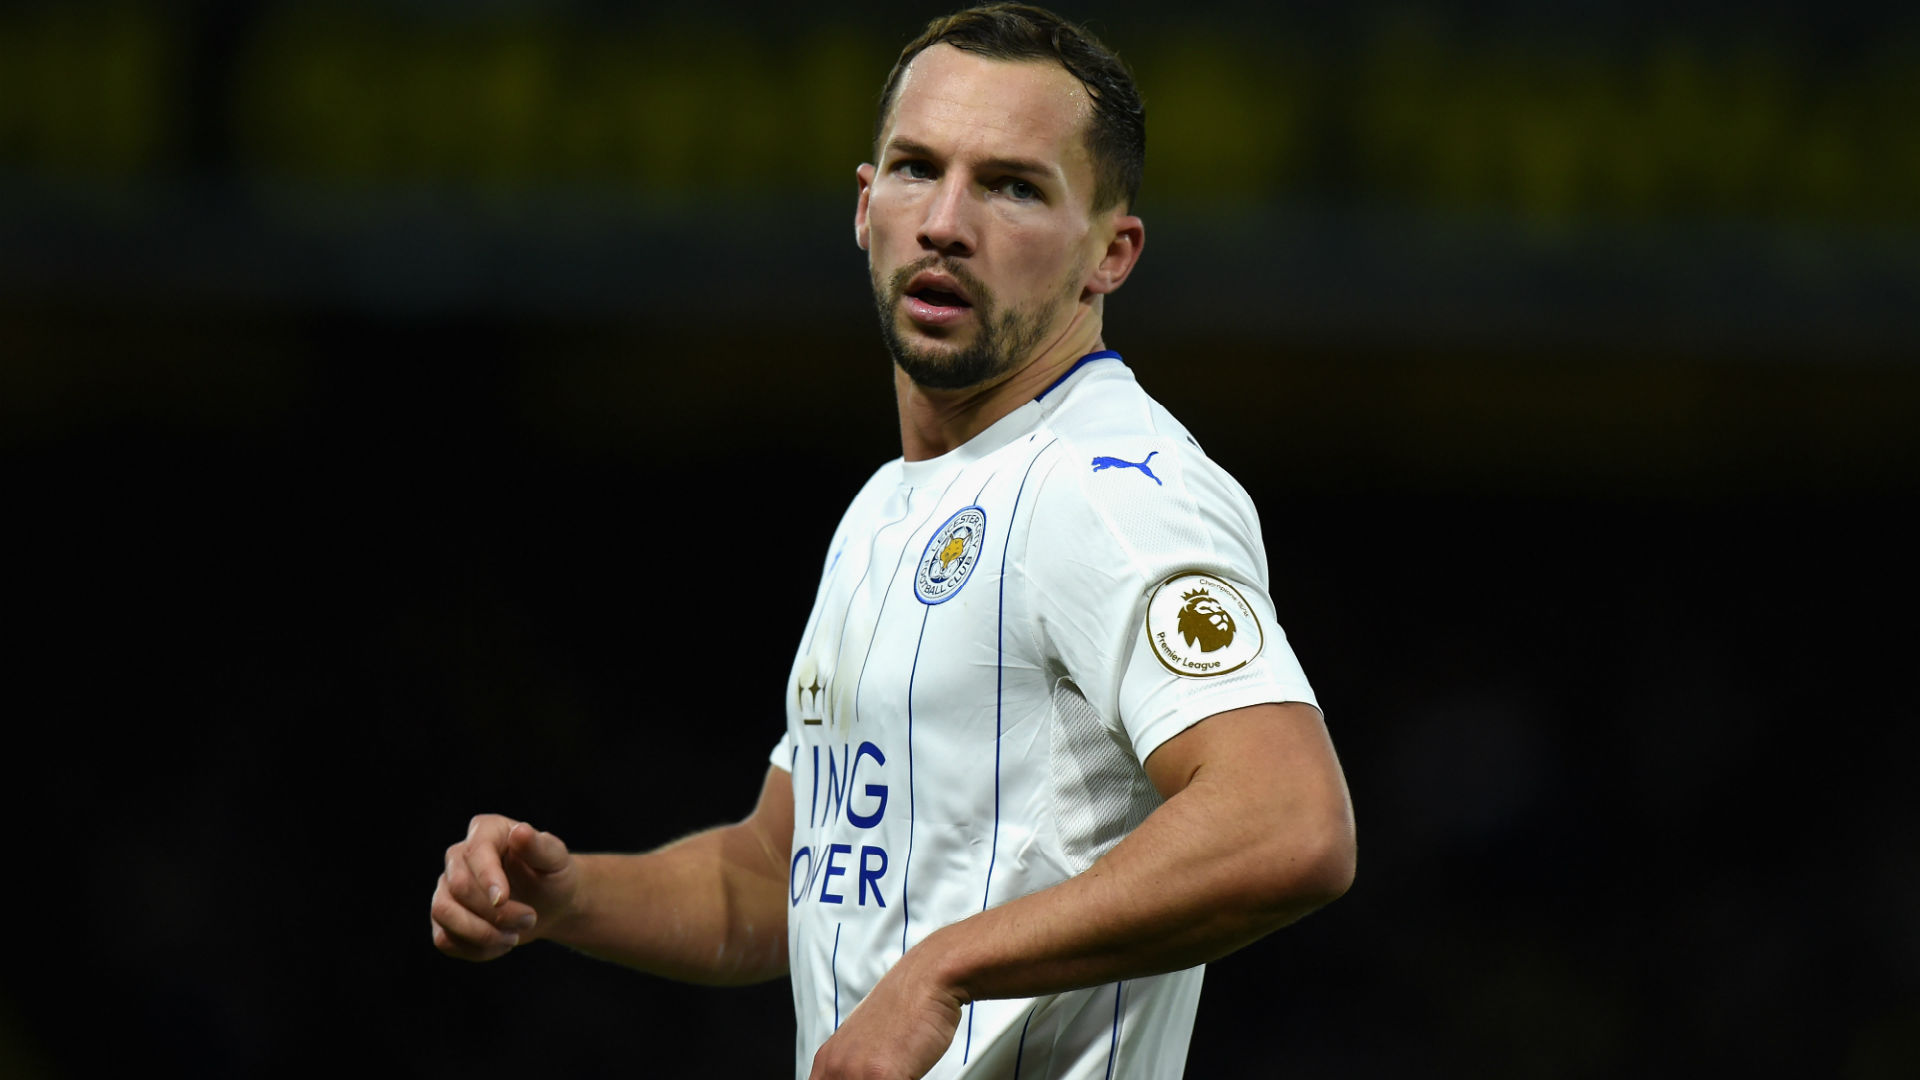 Leicester City vs Club Brugge: confirmed starting lineups